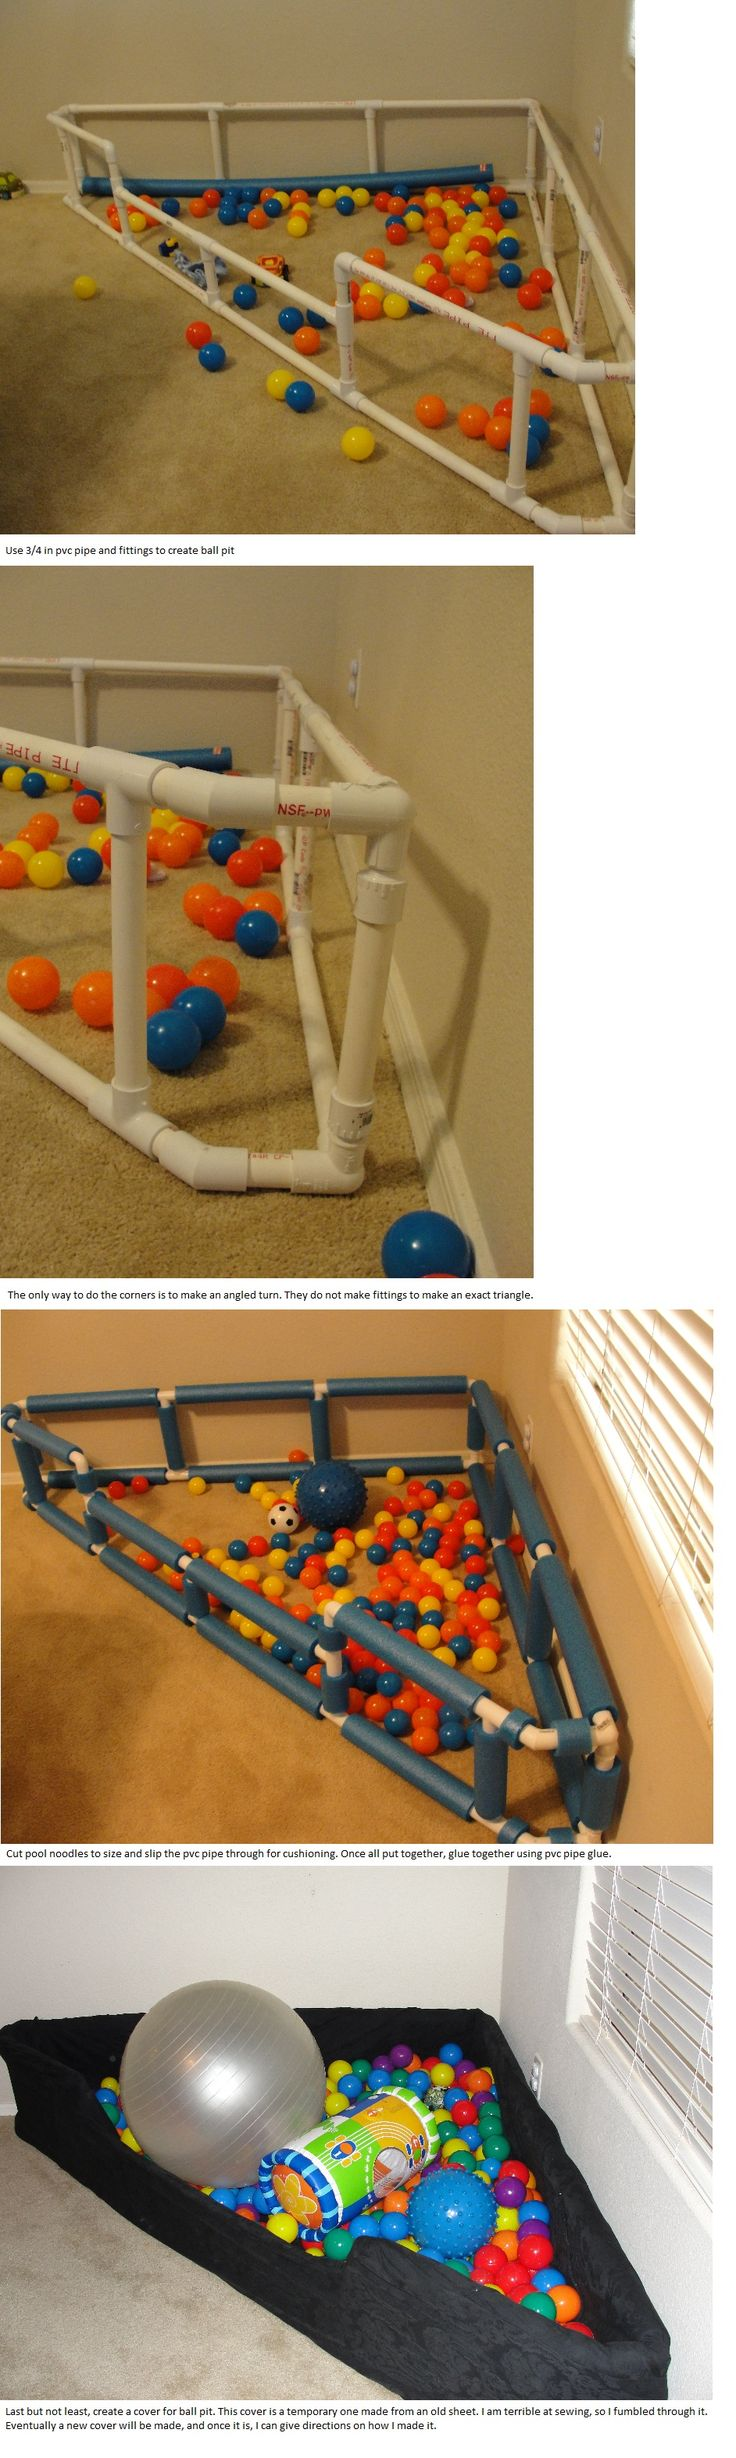 A ball pit using 3/4 in pvc pipe, pool noodles for cushion, pvc glue, and then…